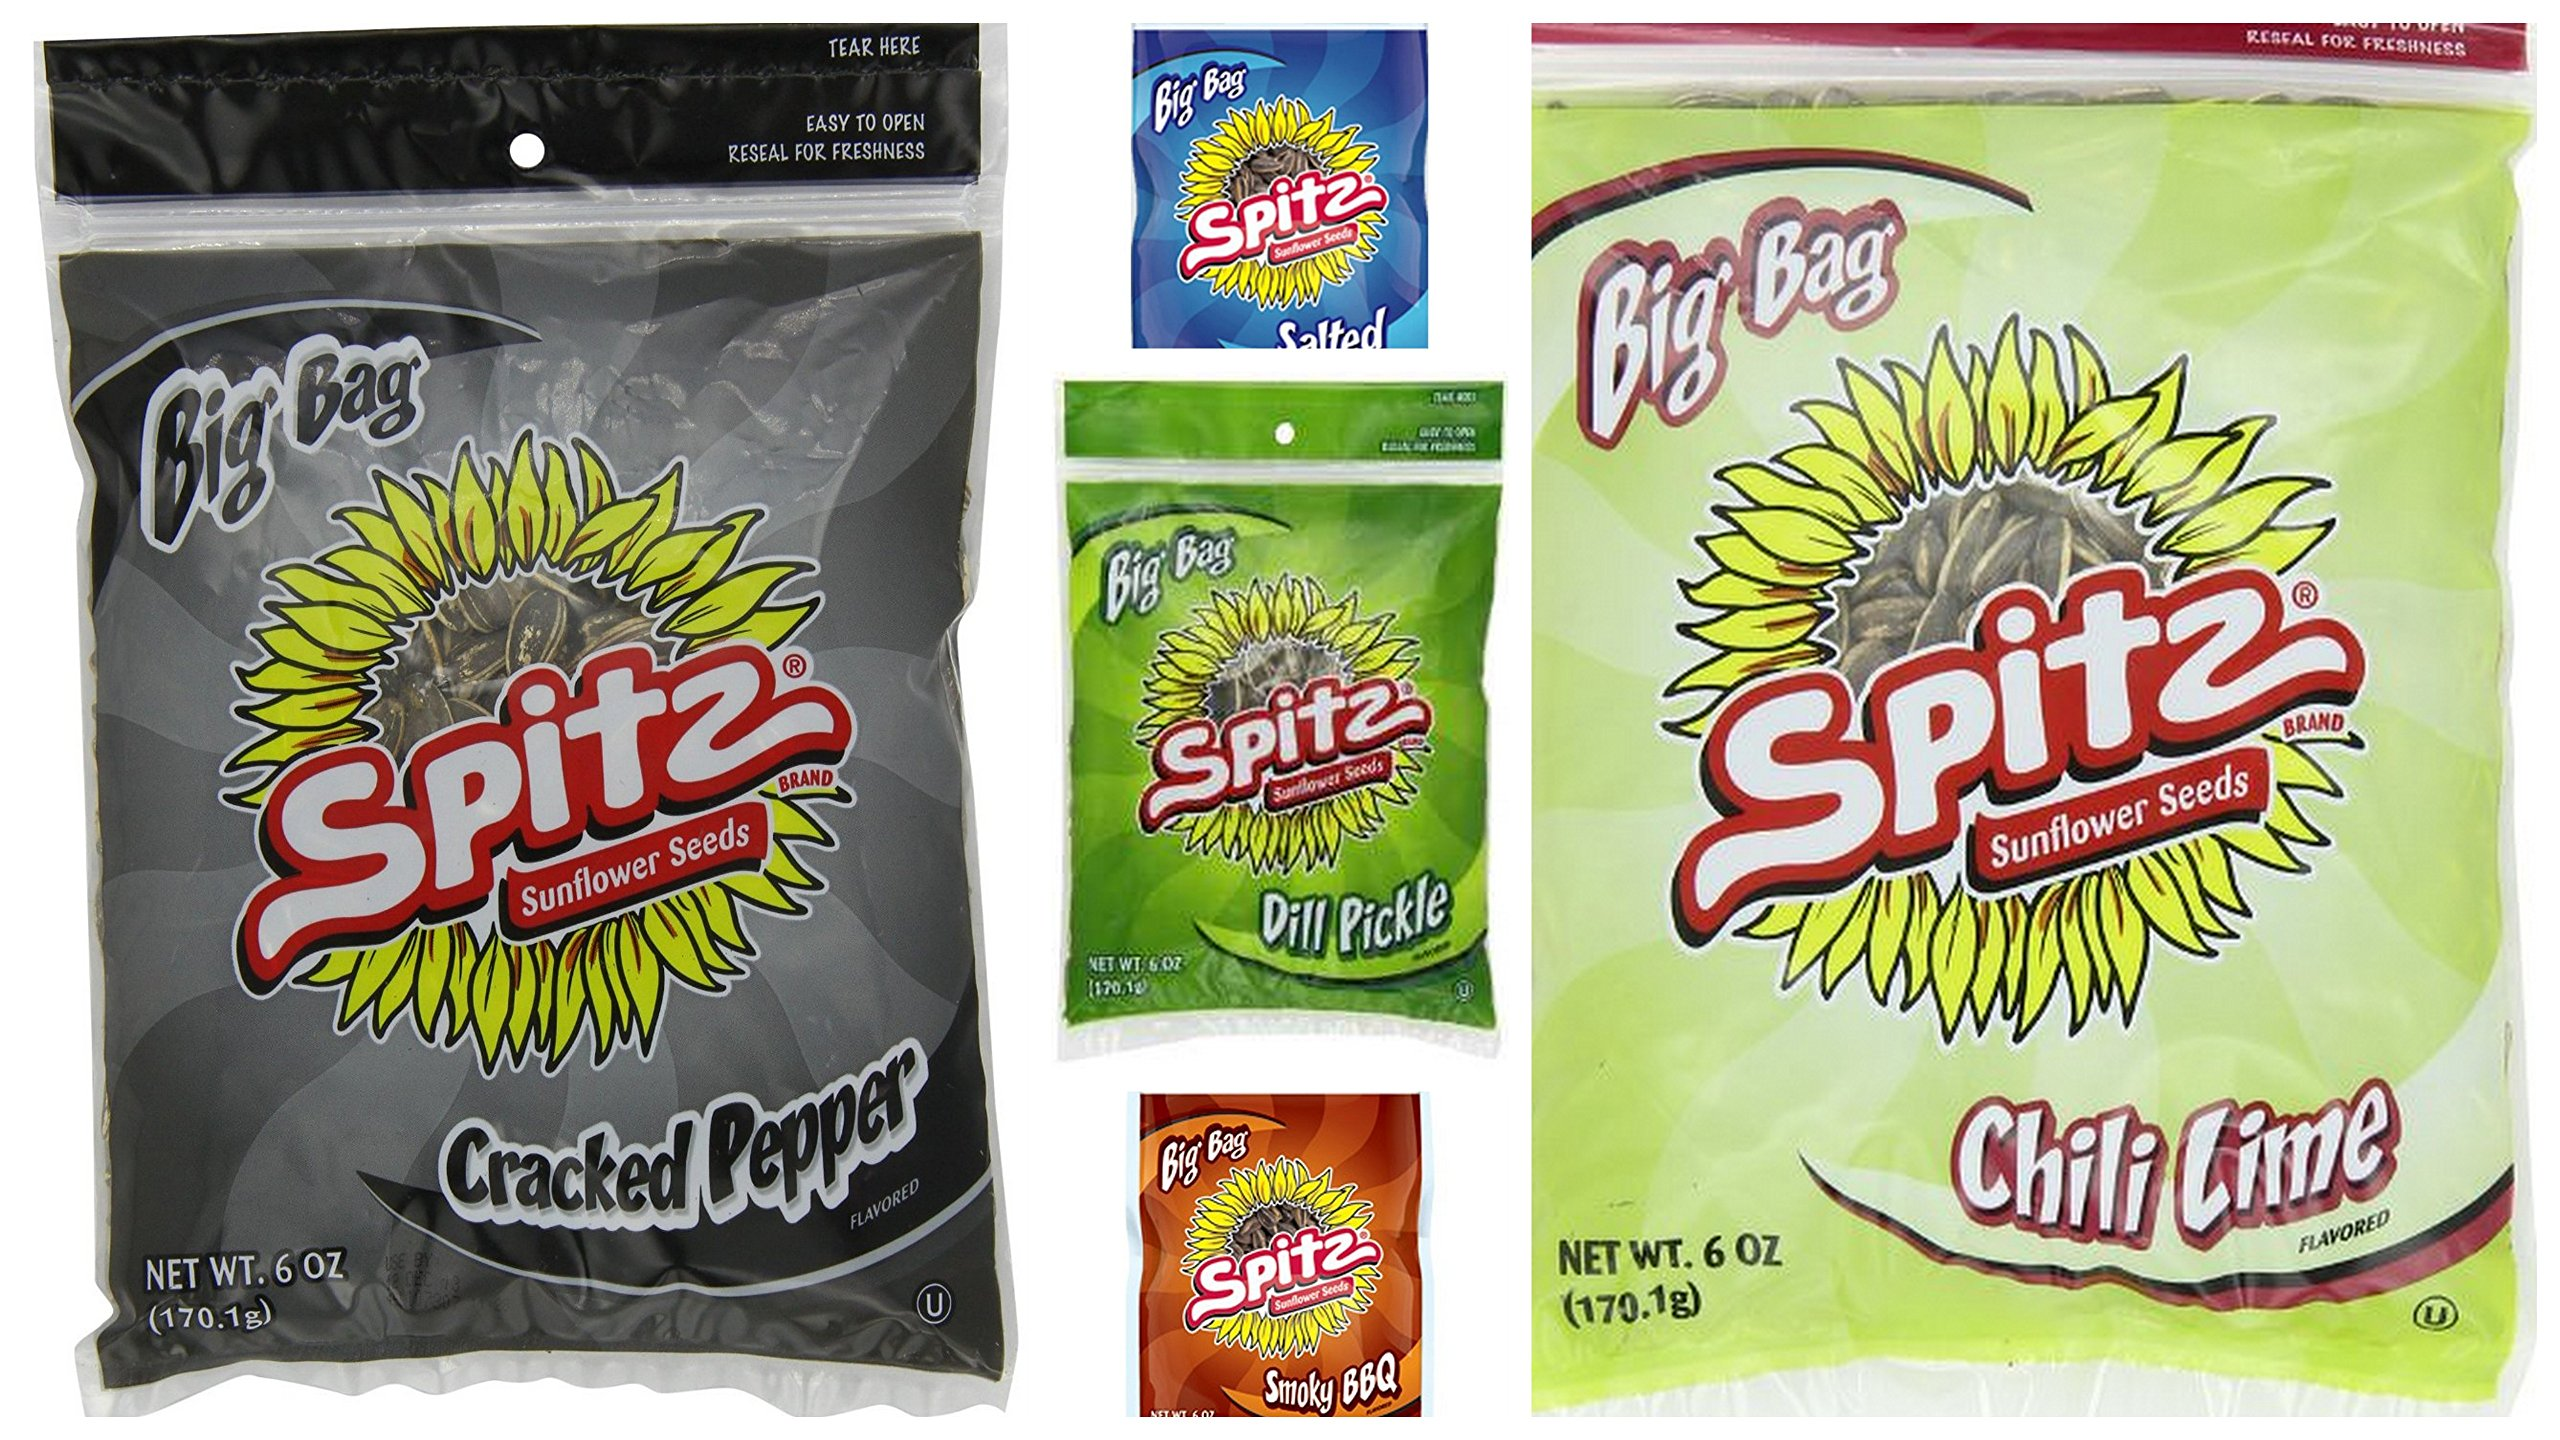 New Spitz Sunflower Seeds Variety Bundle, 6 oz (Pack of 10) includes 2-Bags Salted Flavor + 2-Bag Cracked Pepper + 2-Bags BBQ Flavor + 2 Bags Dill Pickle + 2-Bags Chili Lime by Spitz